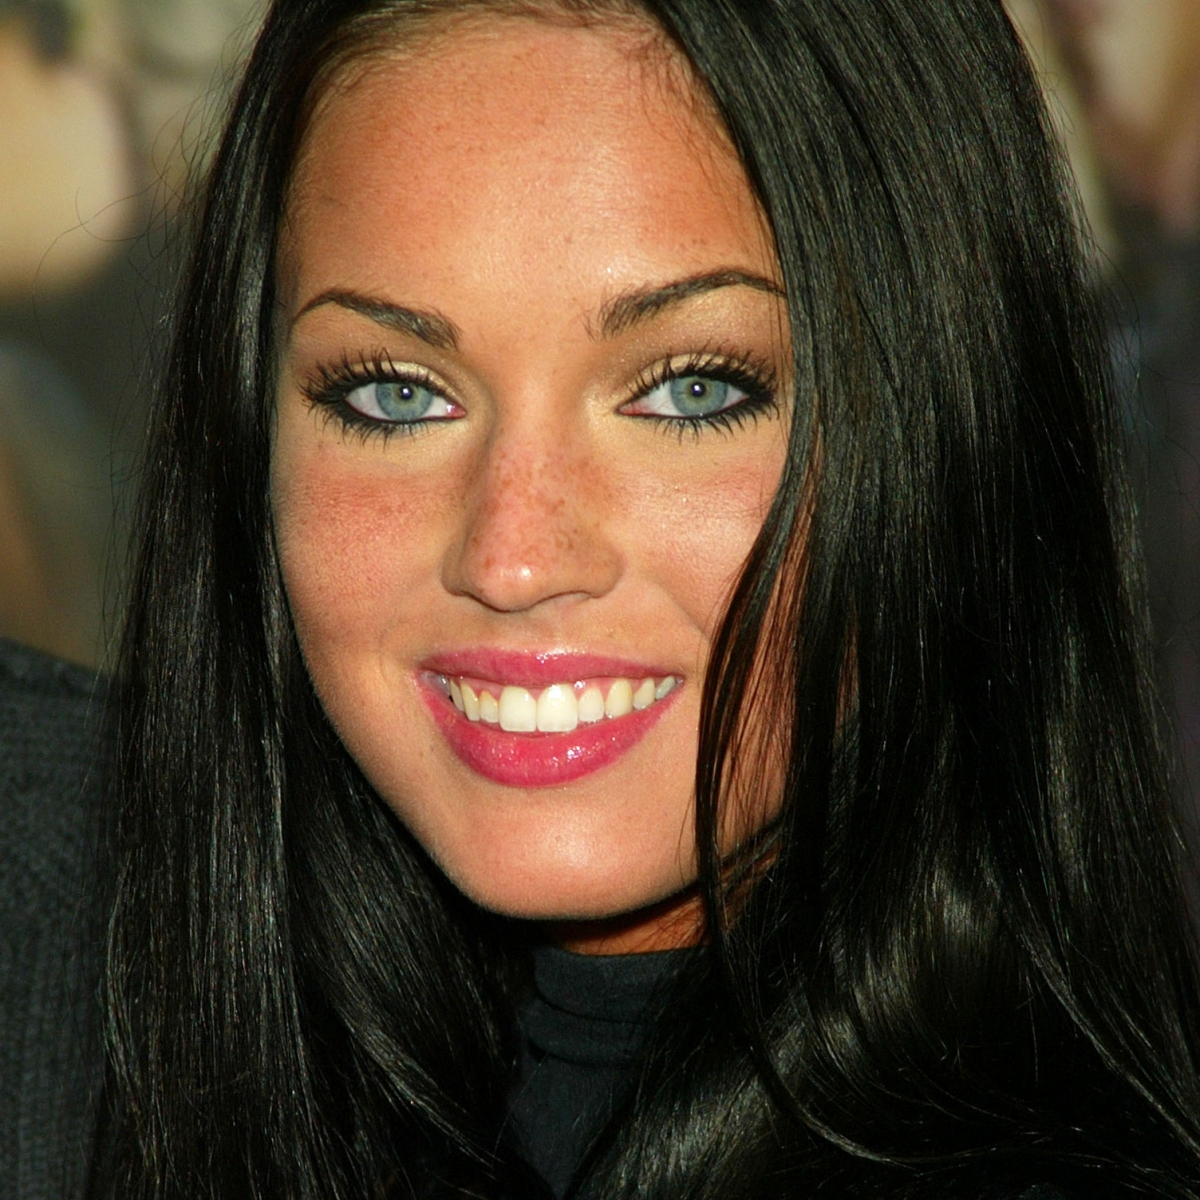 megan fox plastic surgery has the actress gone under the knife